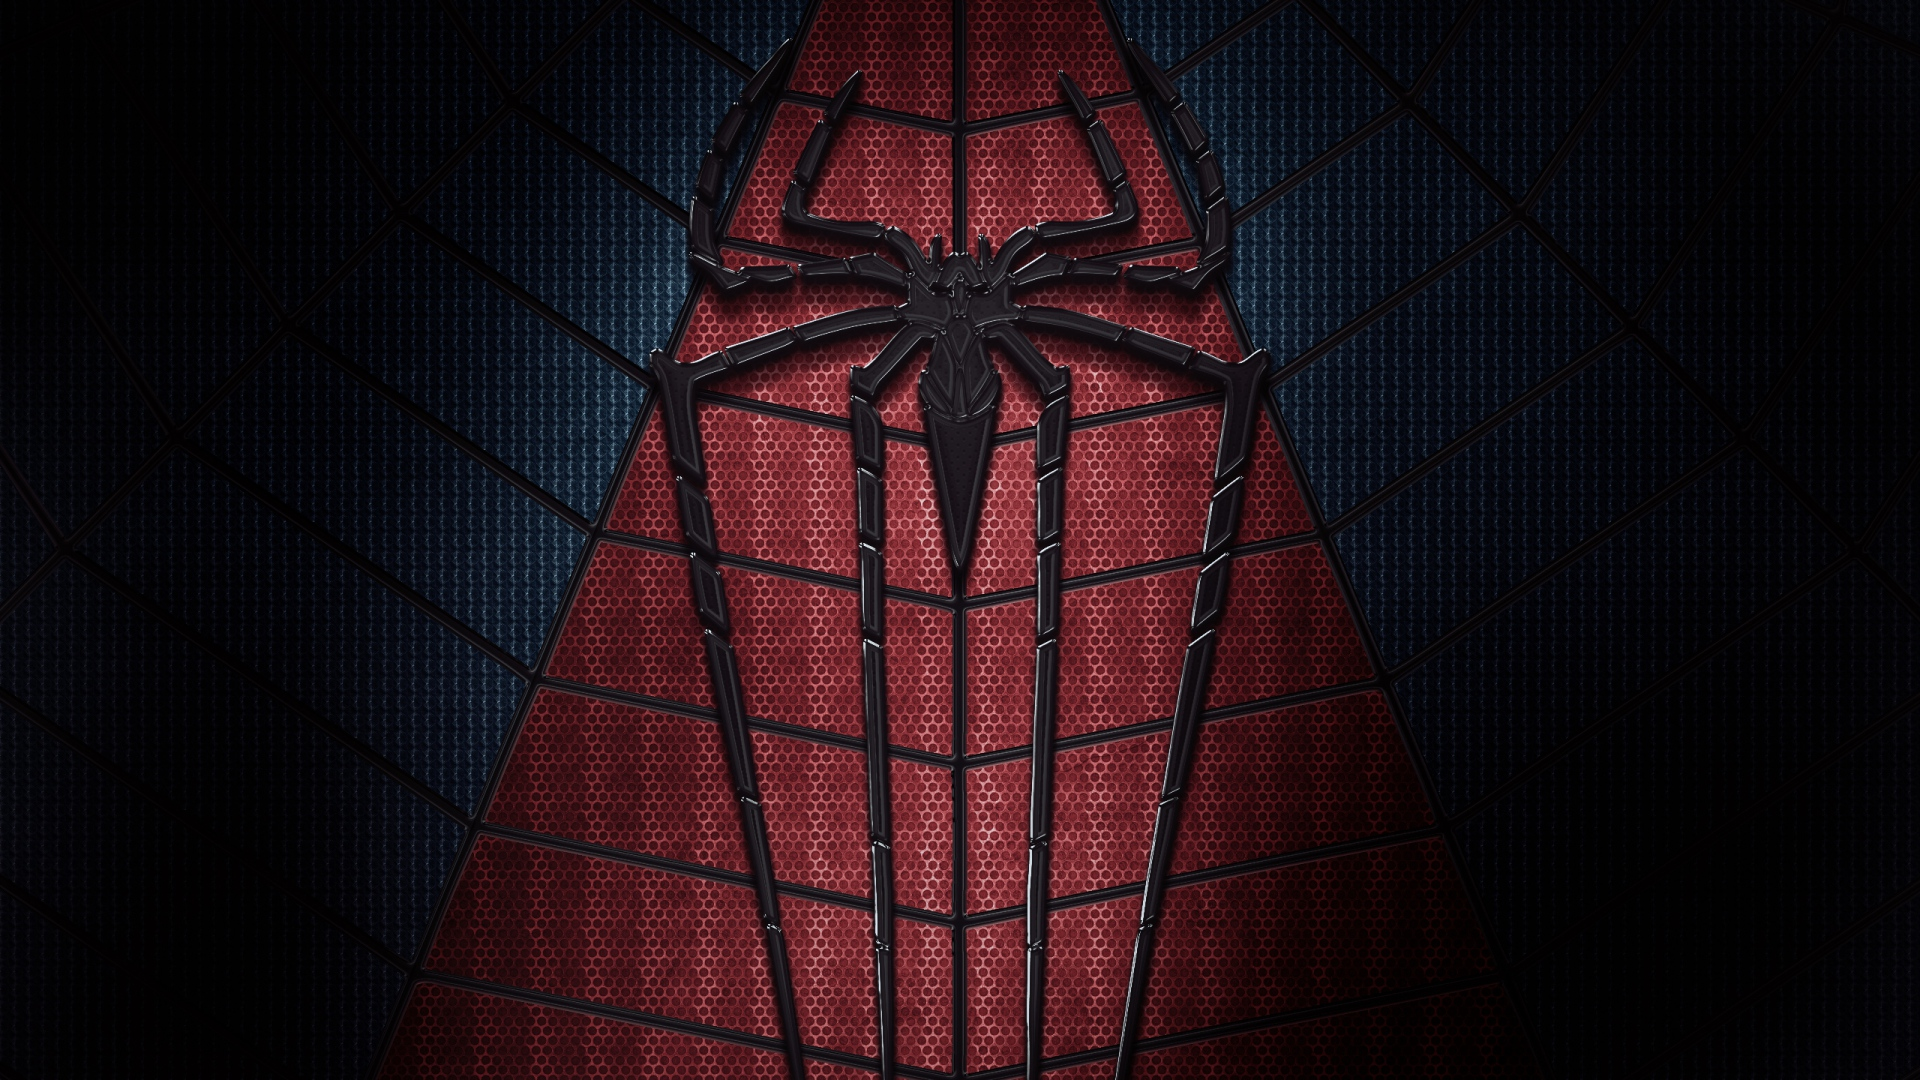 Spiderman Chest Windows 10 Wallpaper Movies Hd 1920x1080 Wallpapers